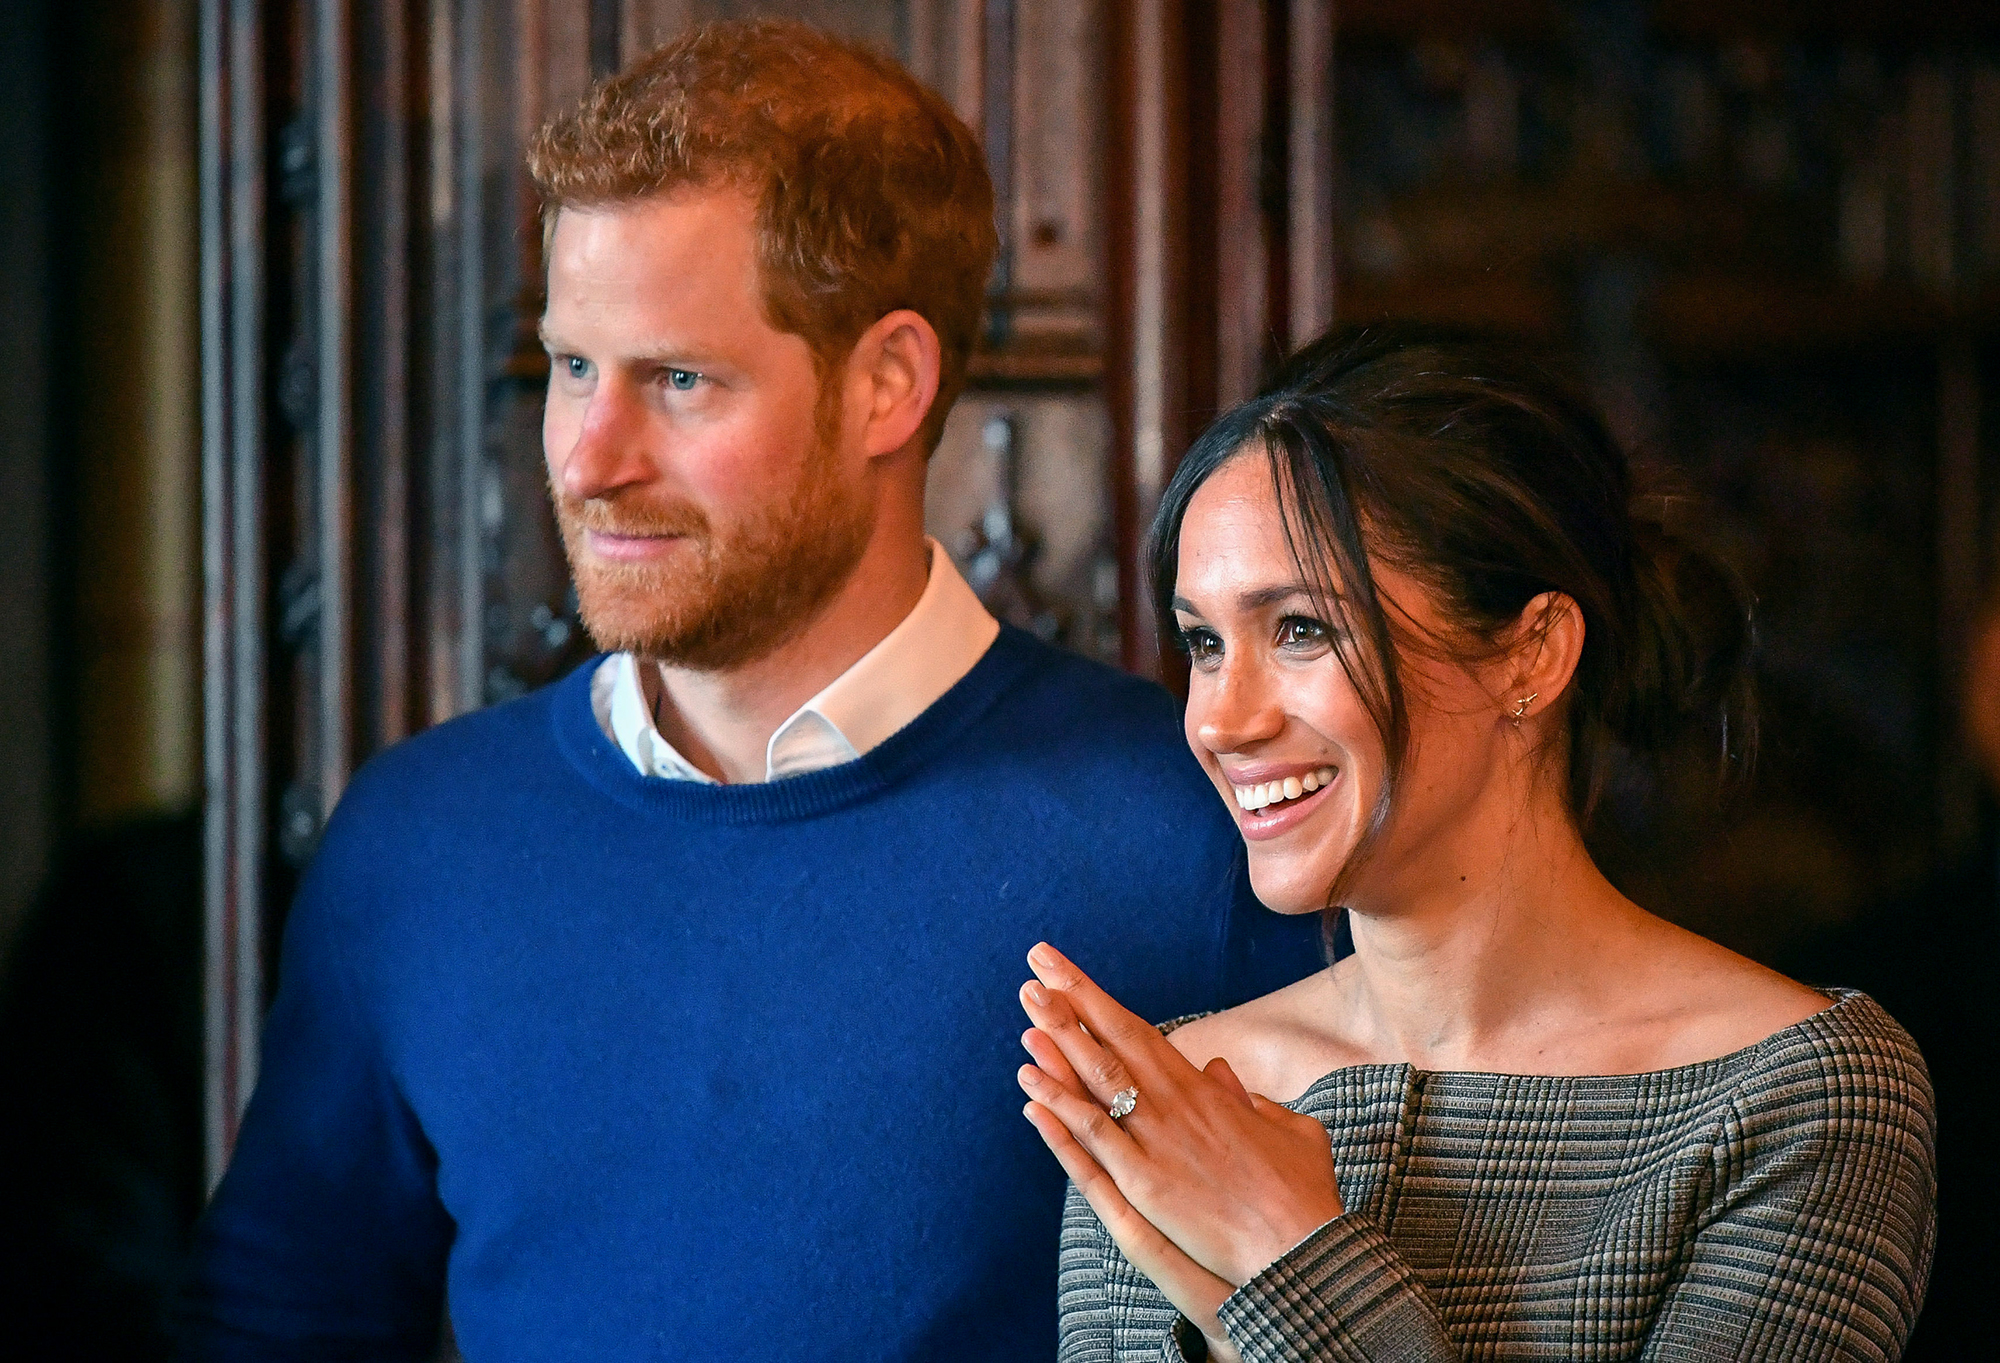 Meghan Markle, Karlie Kloss and More Celebrities Who've Married Into Political Families - The former Suits star married the Duke of Sussex in May 2018, nearly two years after their relationship made headlines. Meghan appeared on the USA drama series as paralegal Rachel Zane for seven seasons, from 2011 to 2018.